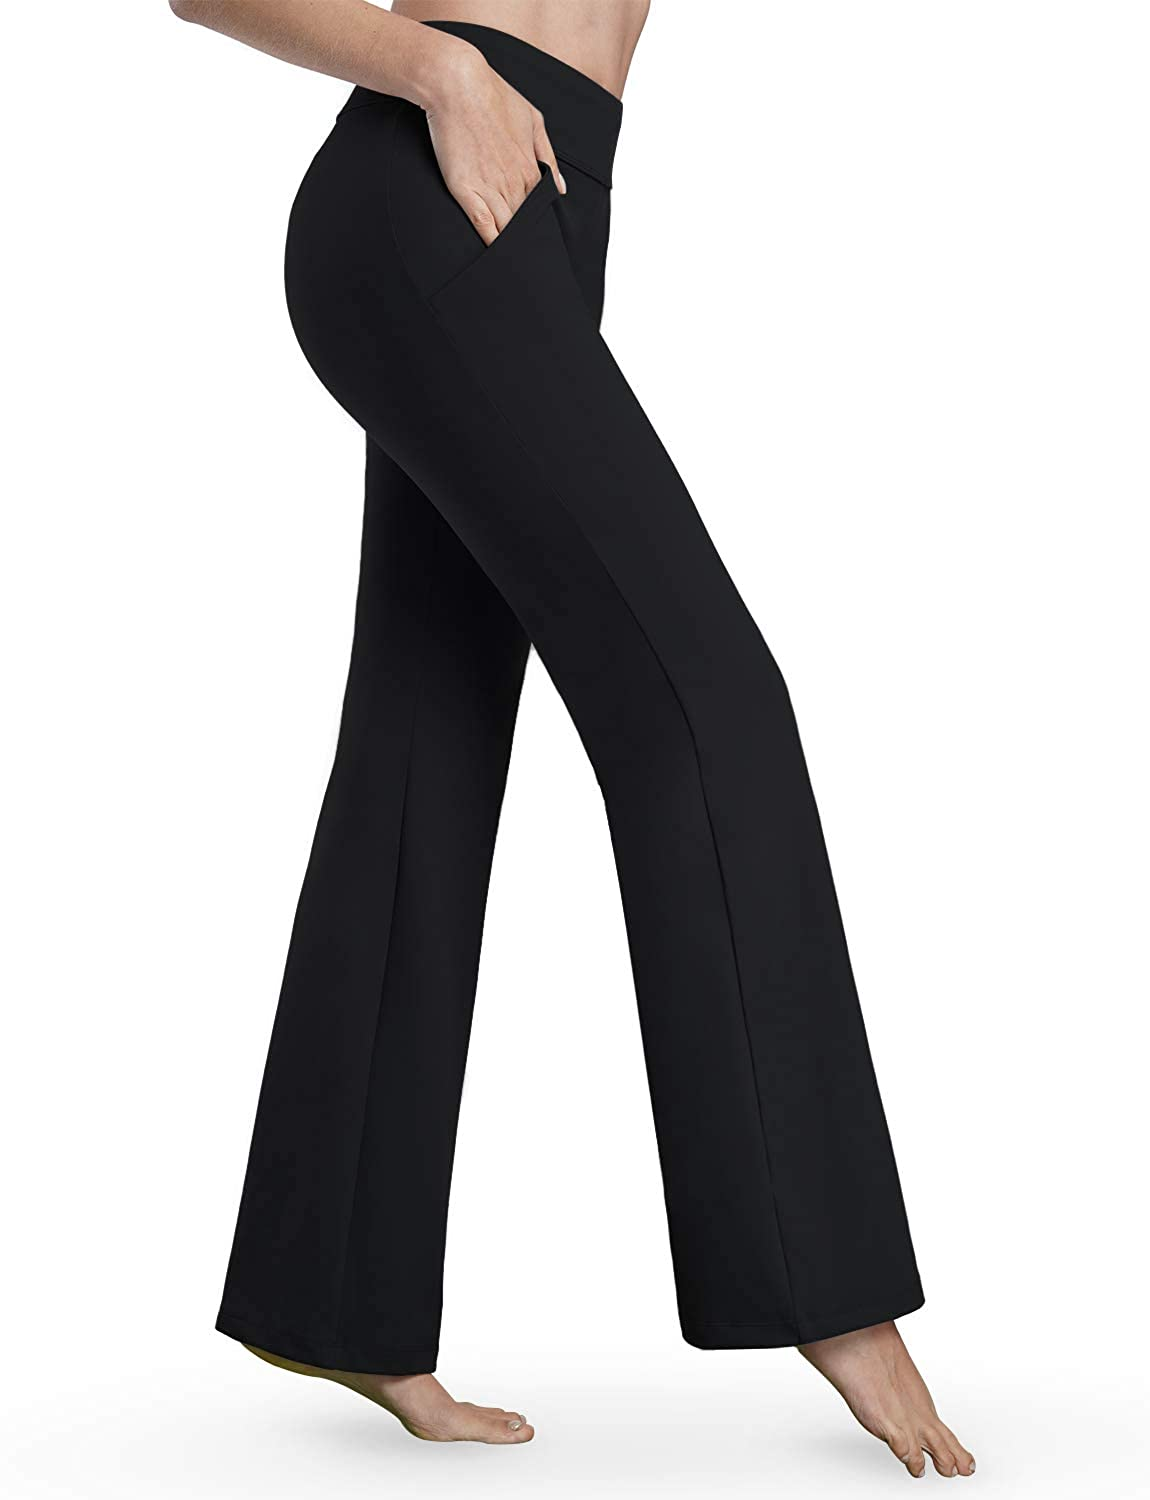 d1c2faedaa5a2b Amazon.com: Bamans Womens Bootcut Yoga Pants with Pockets Tummy Control  Petite to Plus Size Flared Stretch Workout Work Pants: Clothing